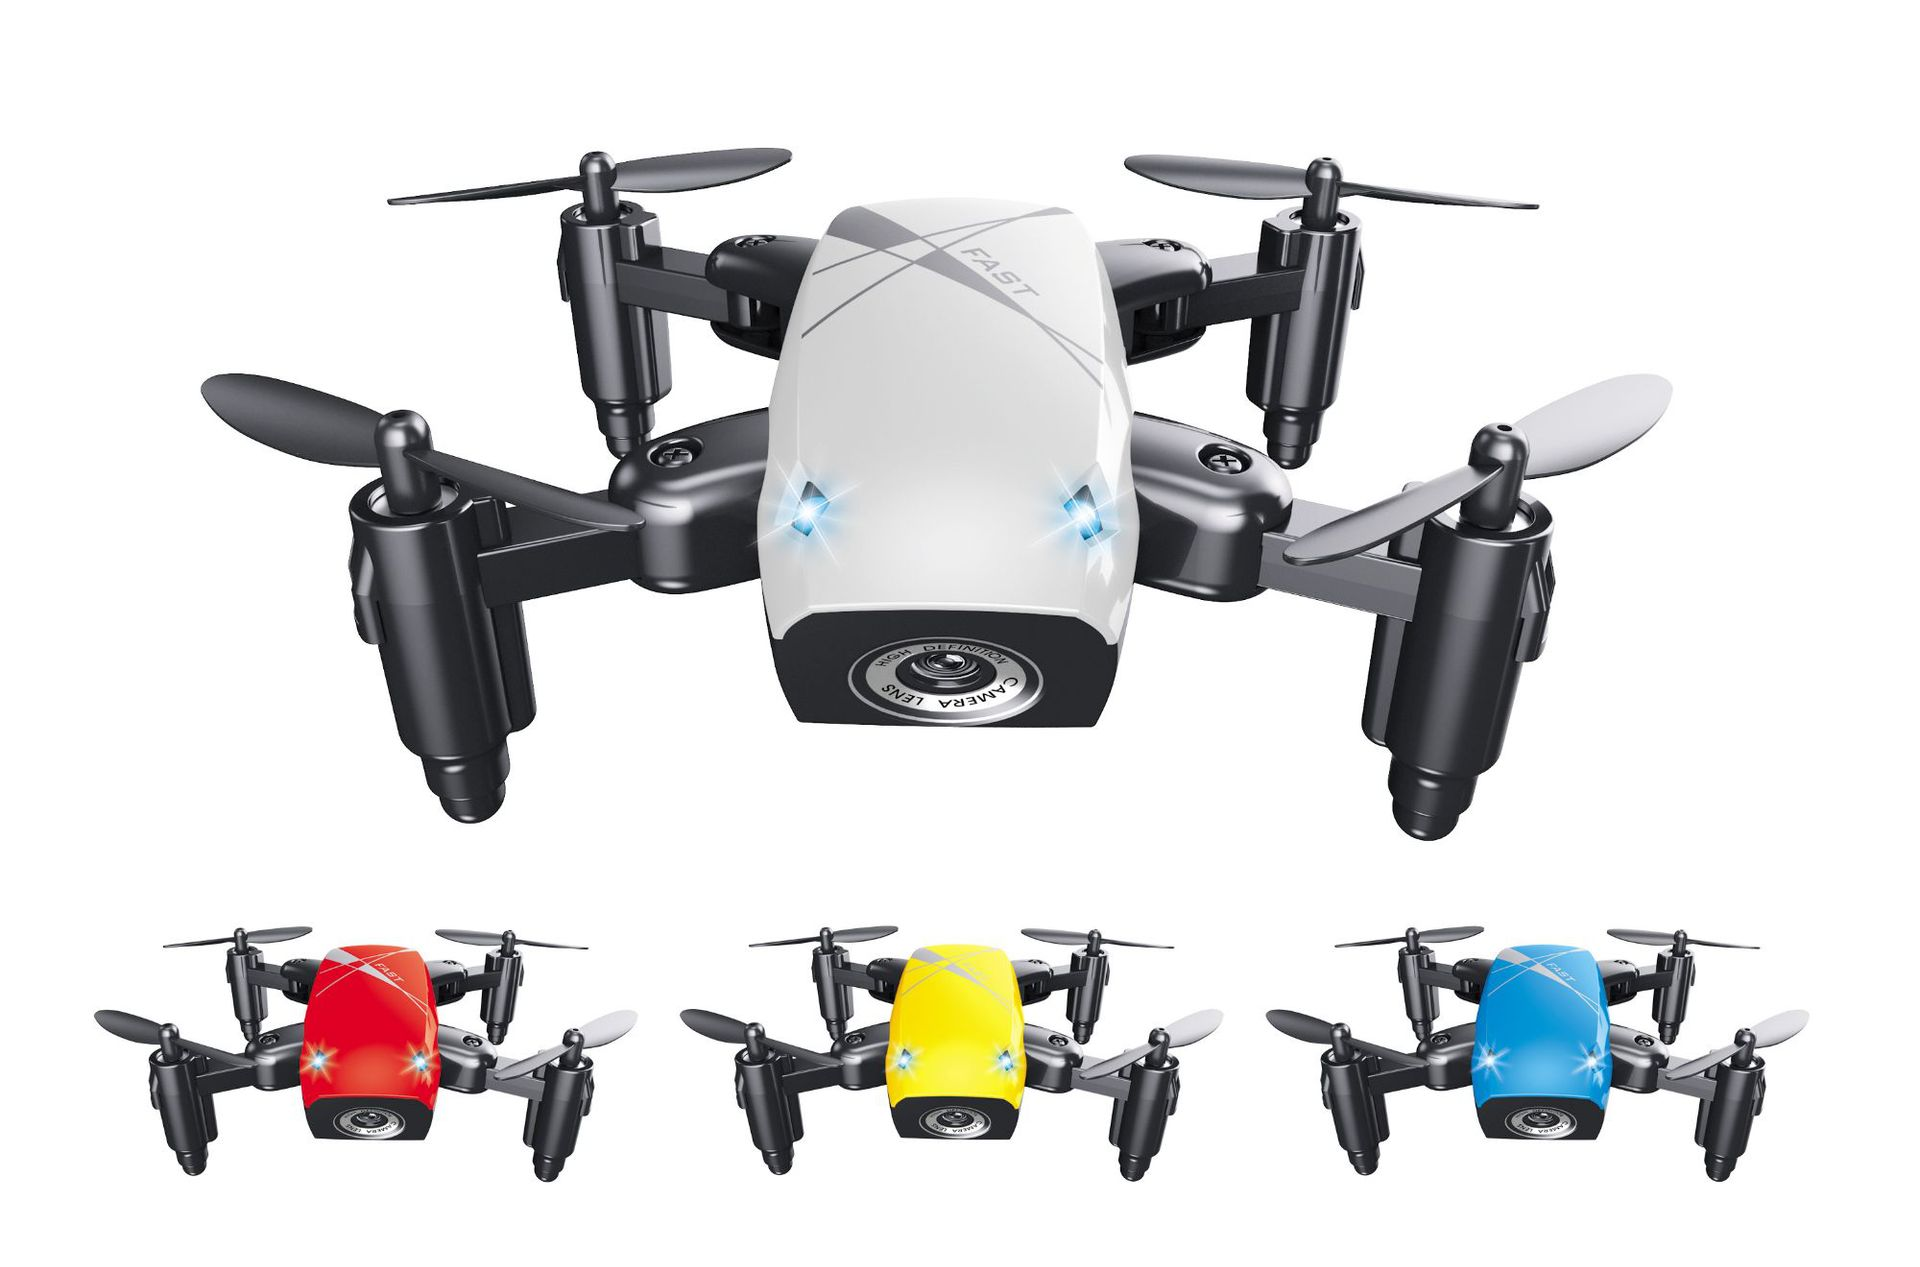 S9 Mini Wifi Aerial Photography Folding Unmanned Aerial Vehicle Quadcopter Remote Control Aircraft Electric Toys Cross Border To